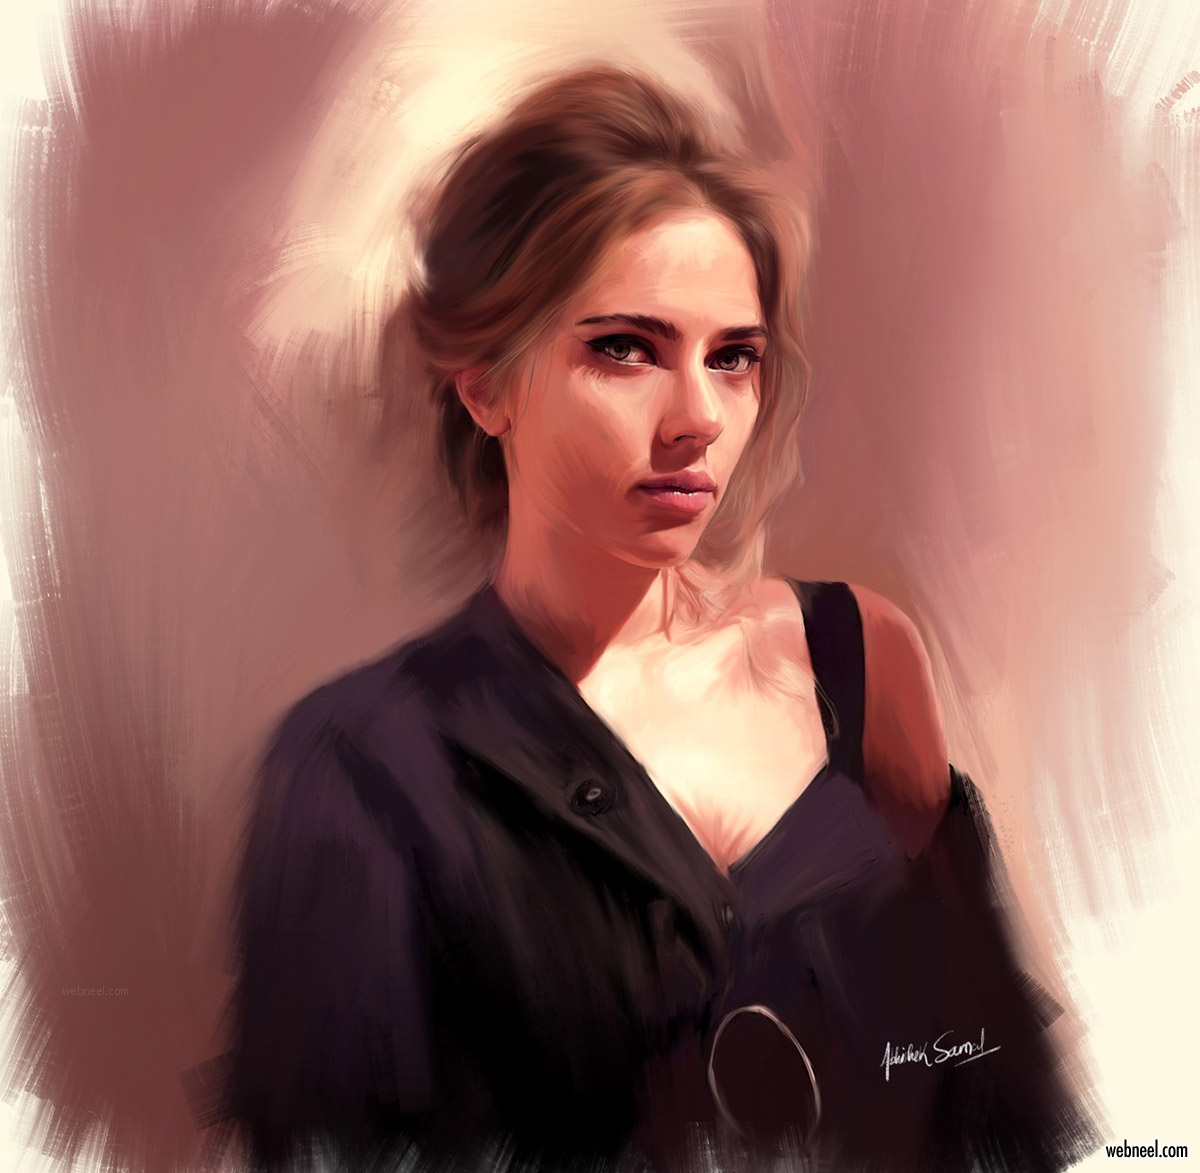 digital painting scarlett johansson american actress singer by abhishek samal